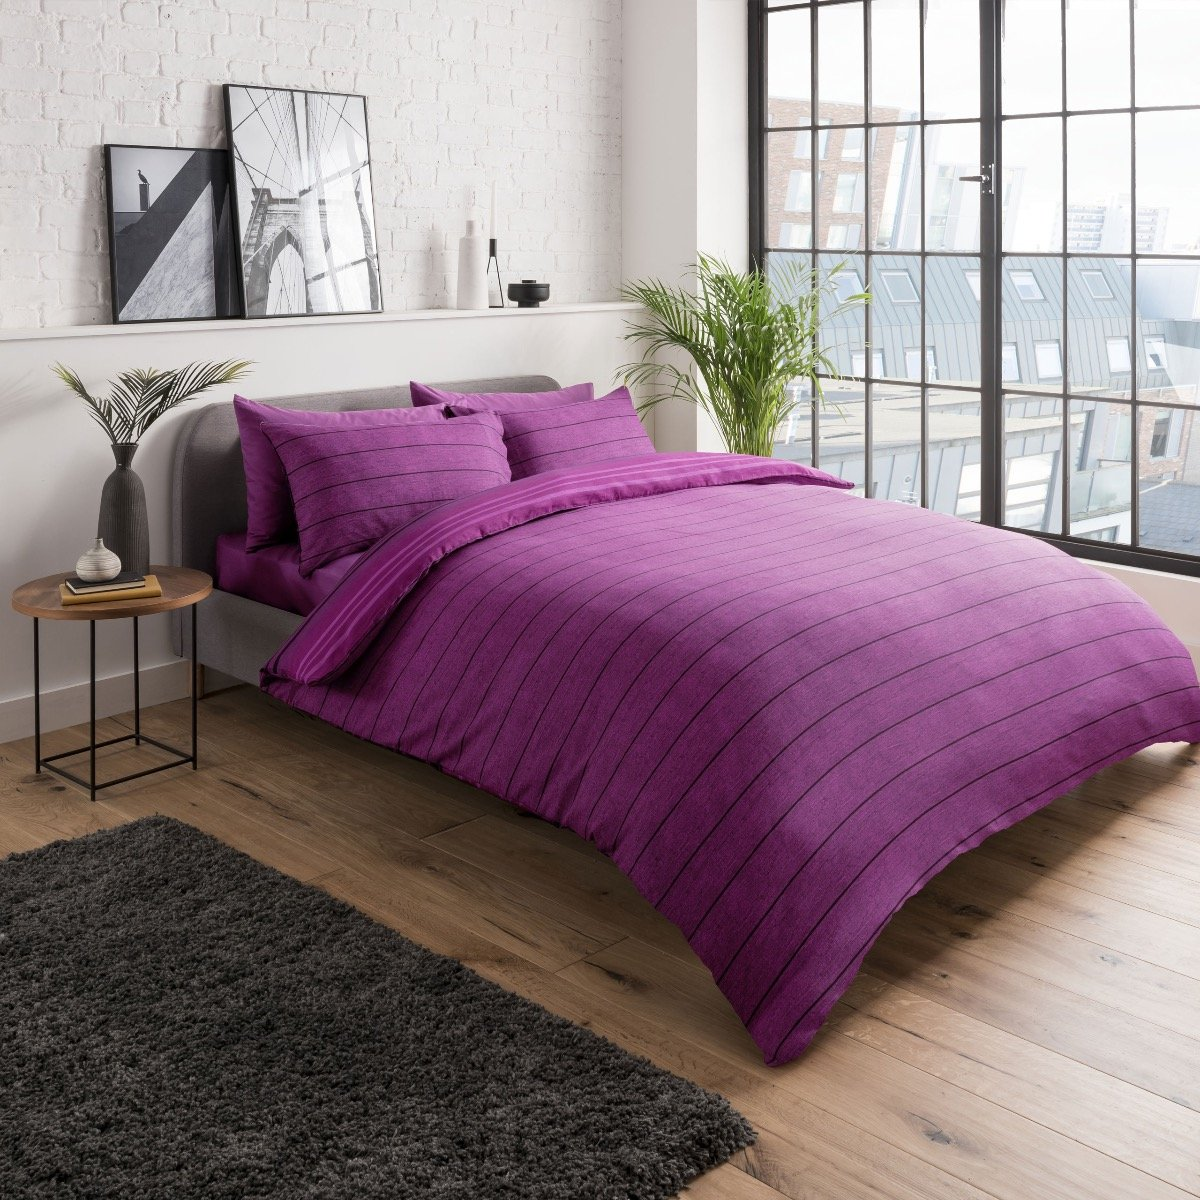 Textured Stripe Purple Bedding - Reversible Duvet Cover and Pillowcase Set